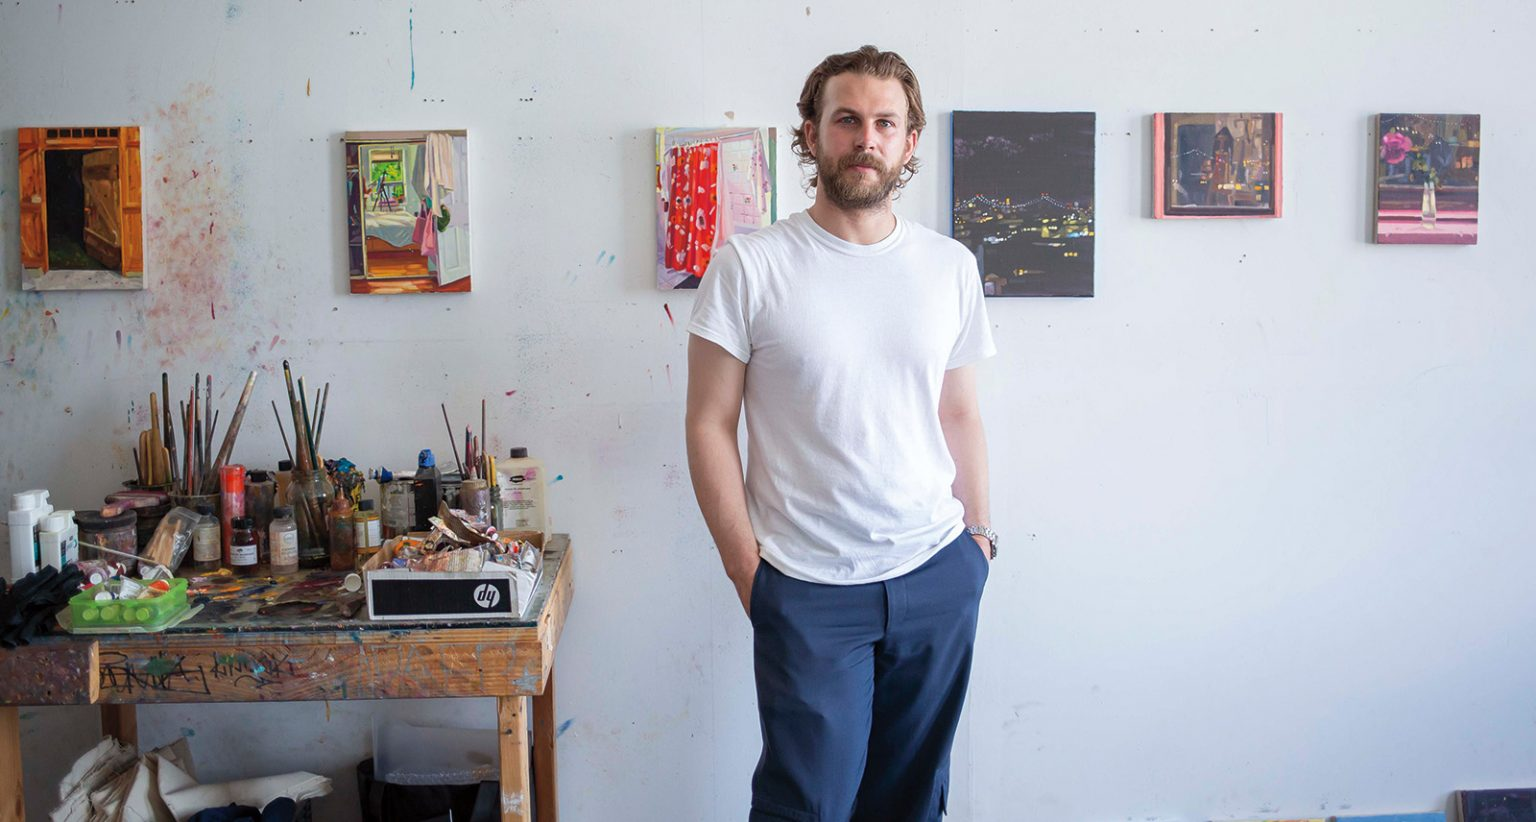 Keiran Brennan Hinton on Painting Everyday Spaces and the Role of Sentimentality in Art